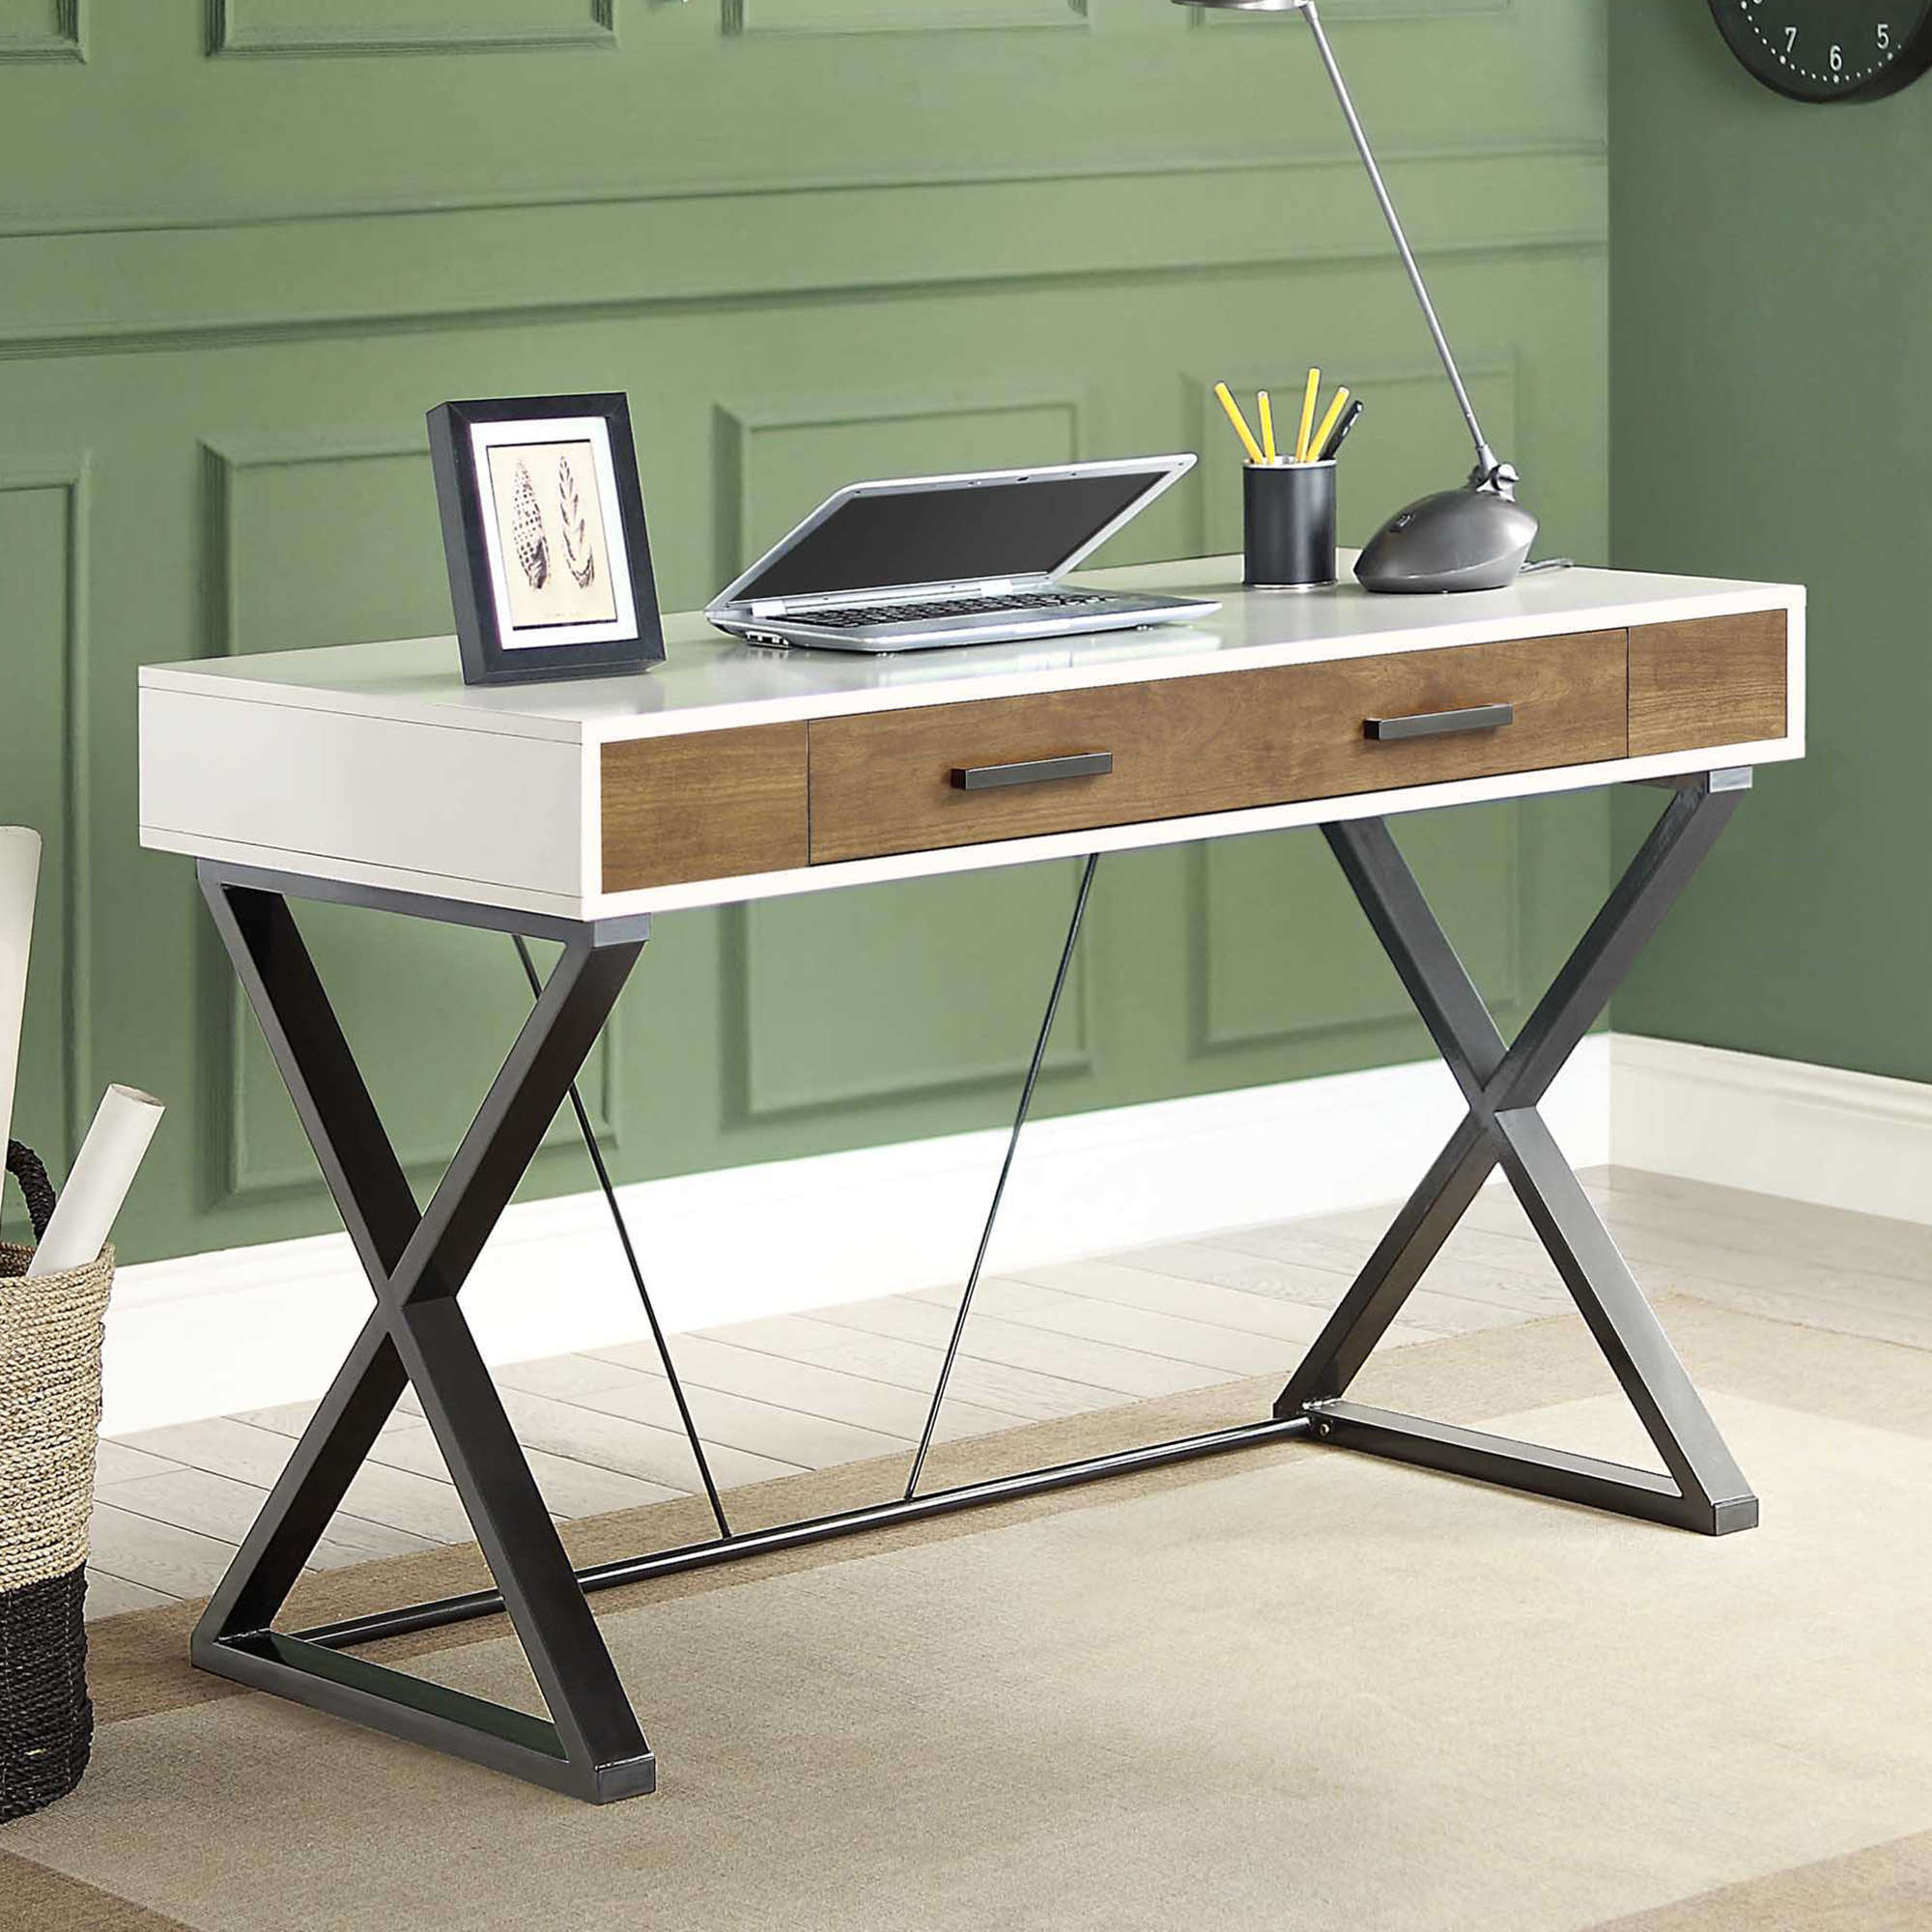 whalen samford computer desk with pullout keyboard tray white